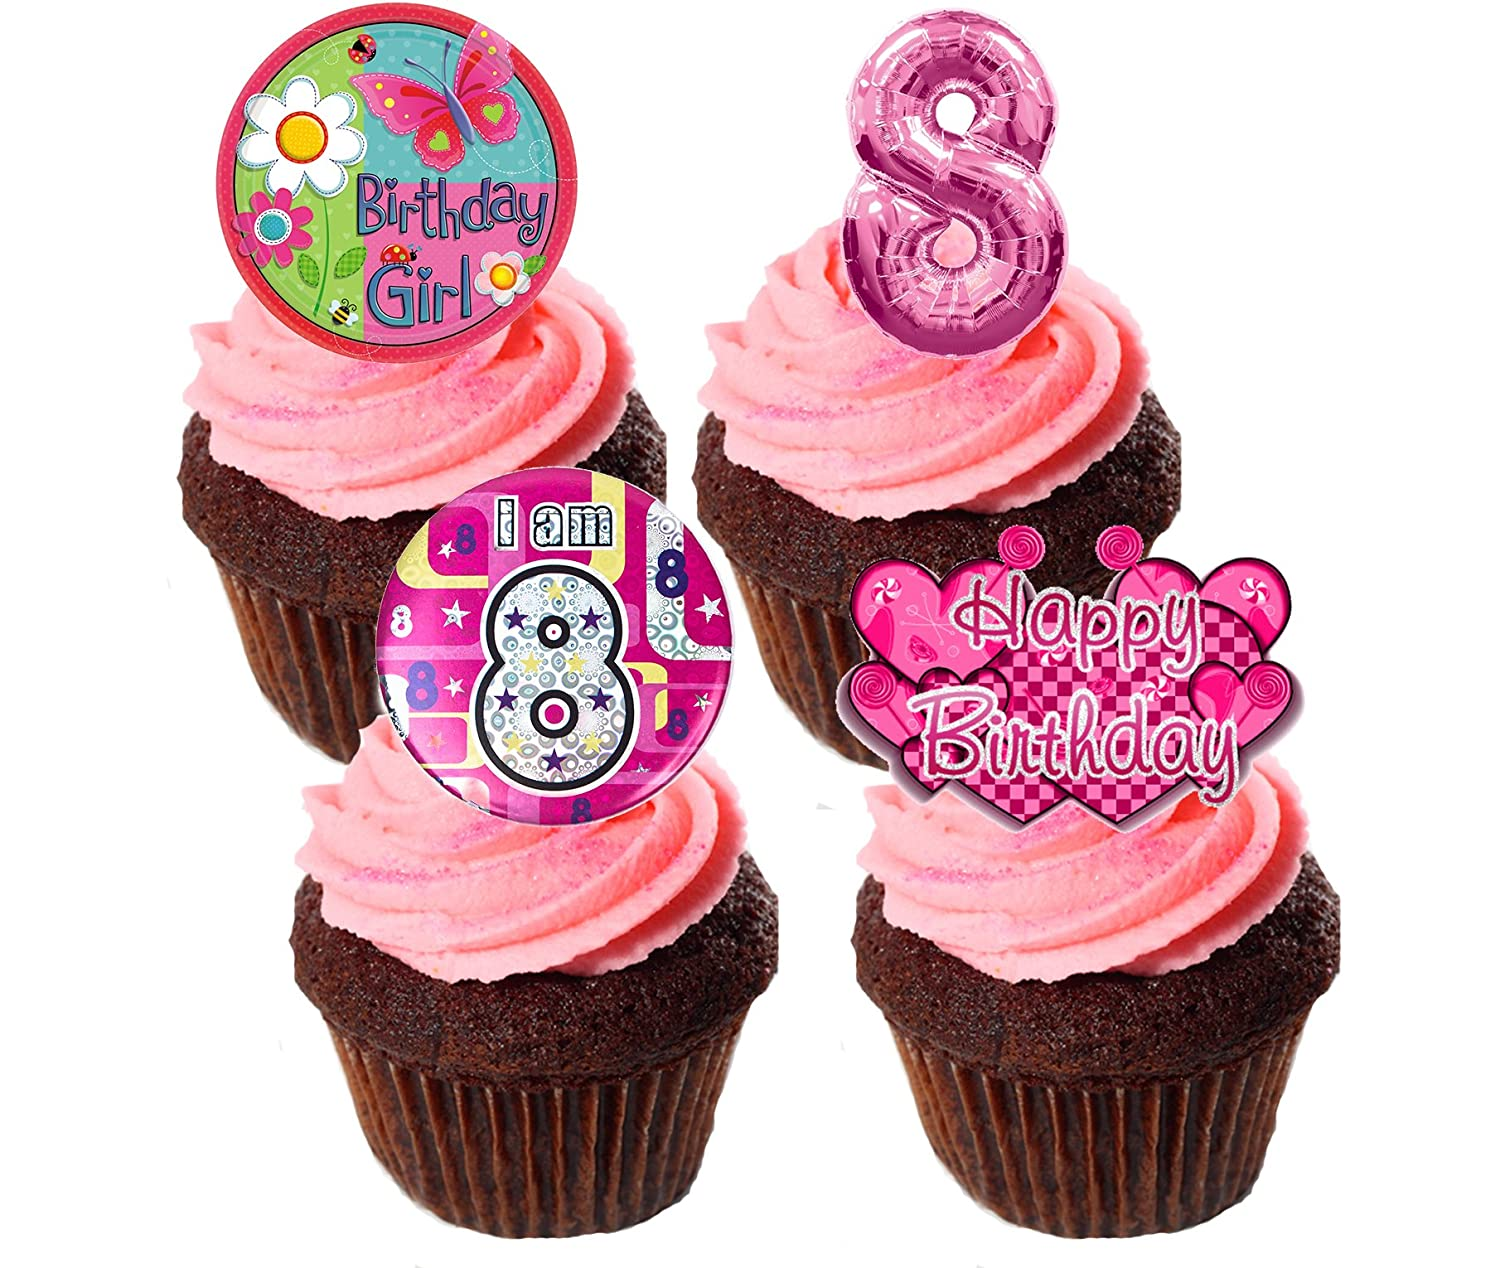 Admirable 8Th Birthday Girl Edible Cupcake Toppers Pink Stand Up Wafer Funny Birthday Cards Online Inifofree Goldxyz